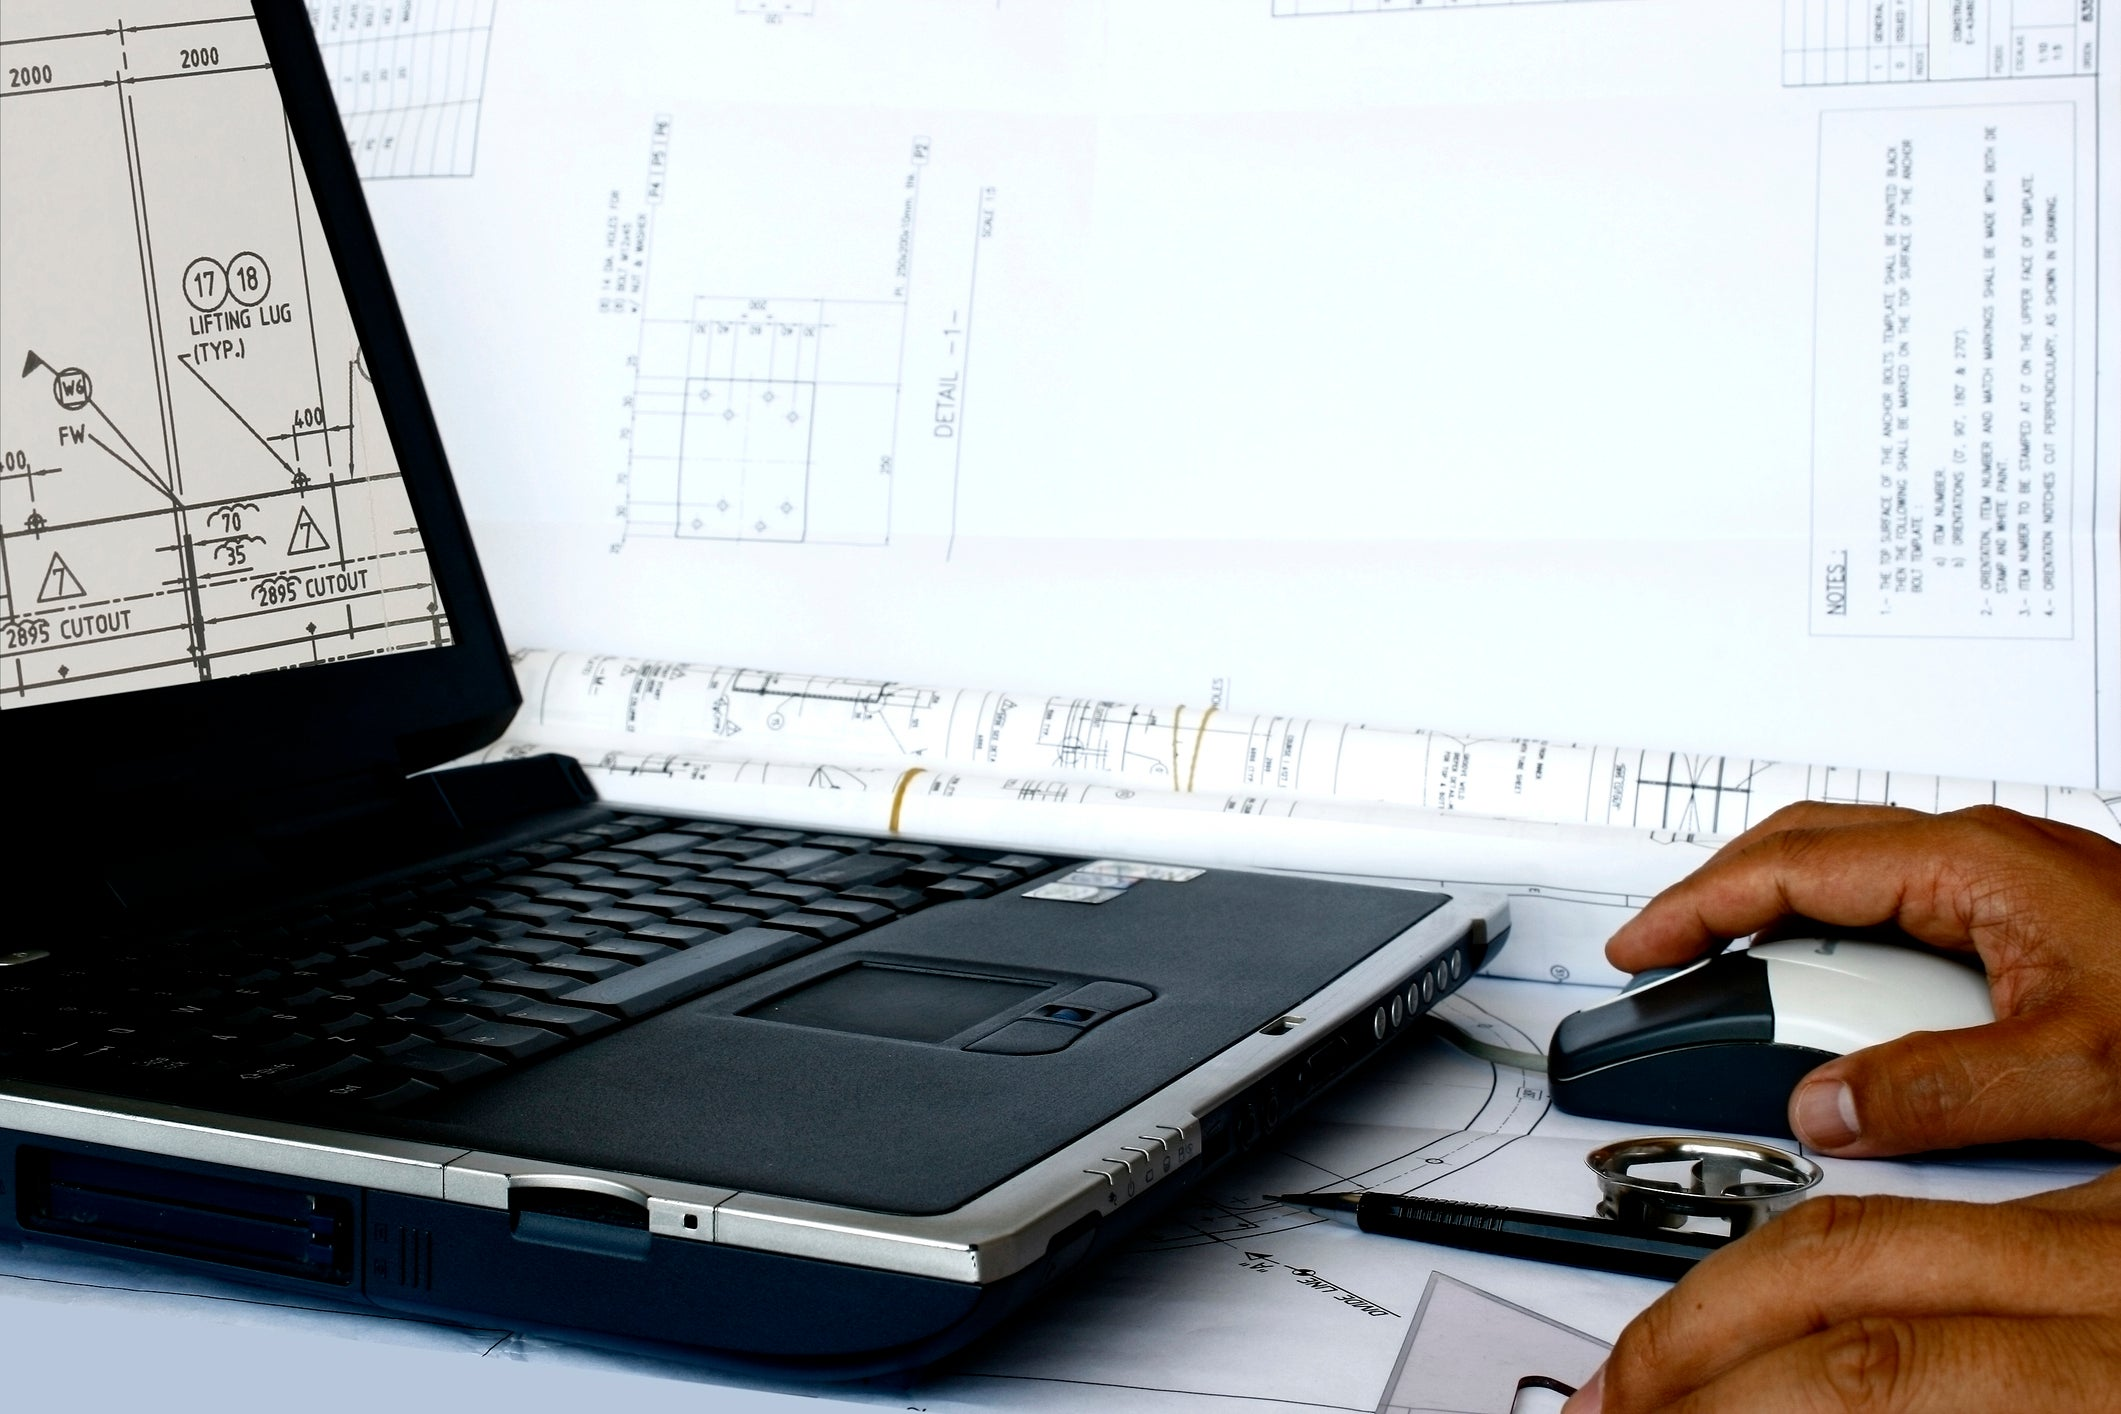 A laptop user works on a design project.